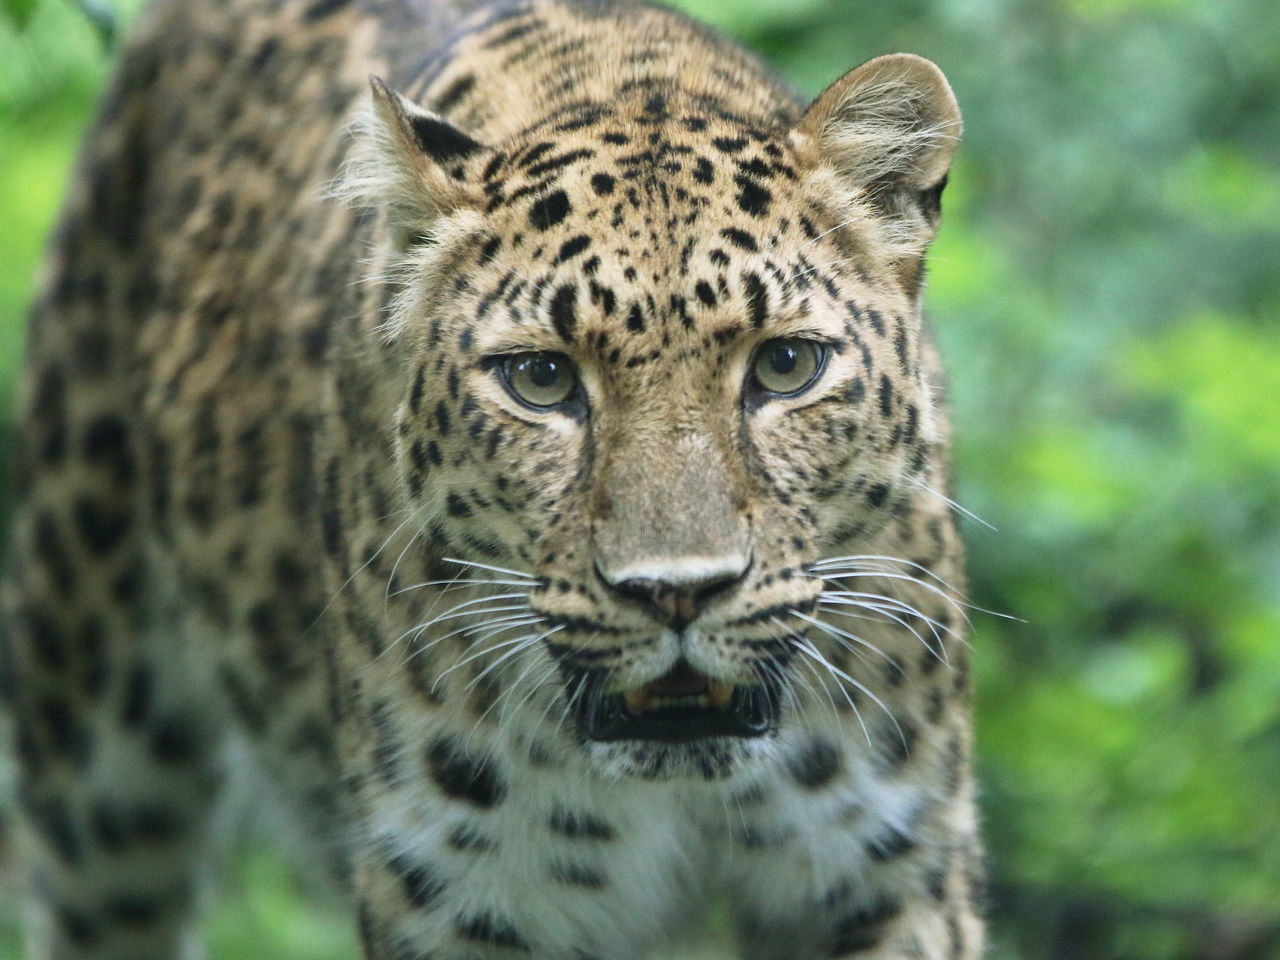 Animal Themes Animal Wildlife Animals In The Wild Cheetah Close-up Day Eye Contact Leopard Looking At Camera Mammal No People One Animal Outdoors Portrait Spotted Zoo